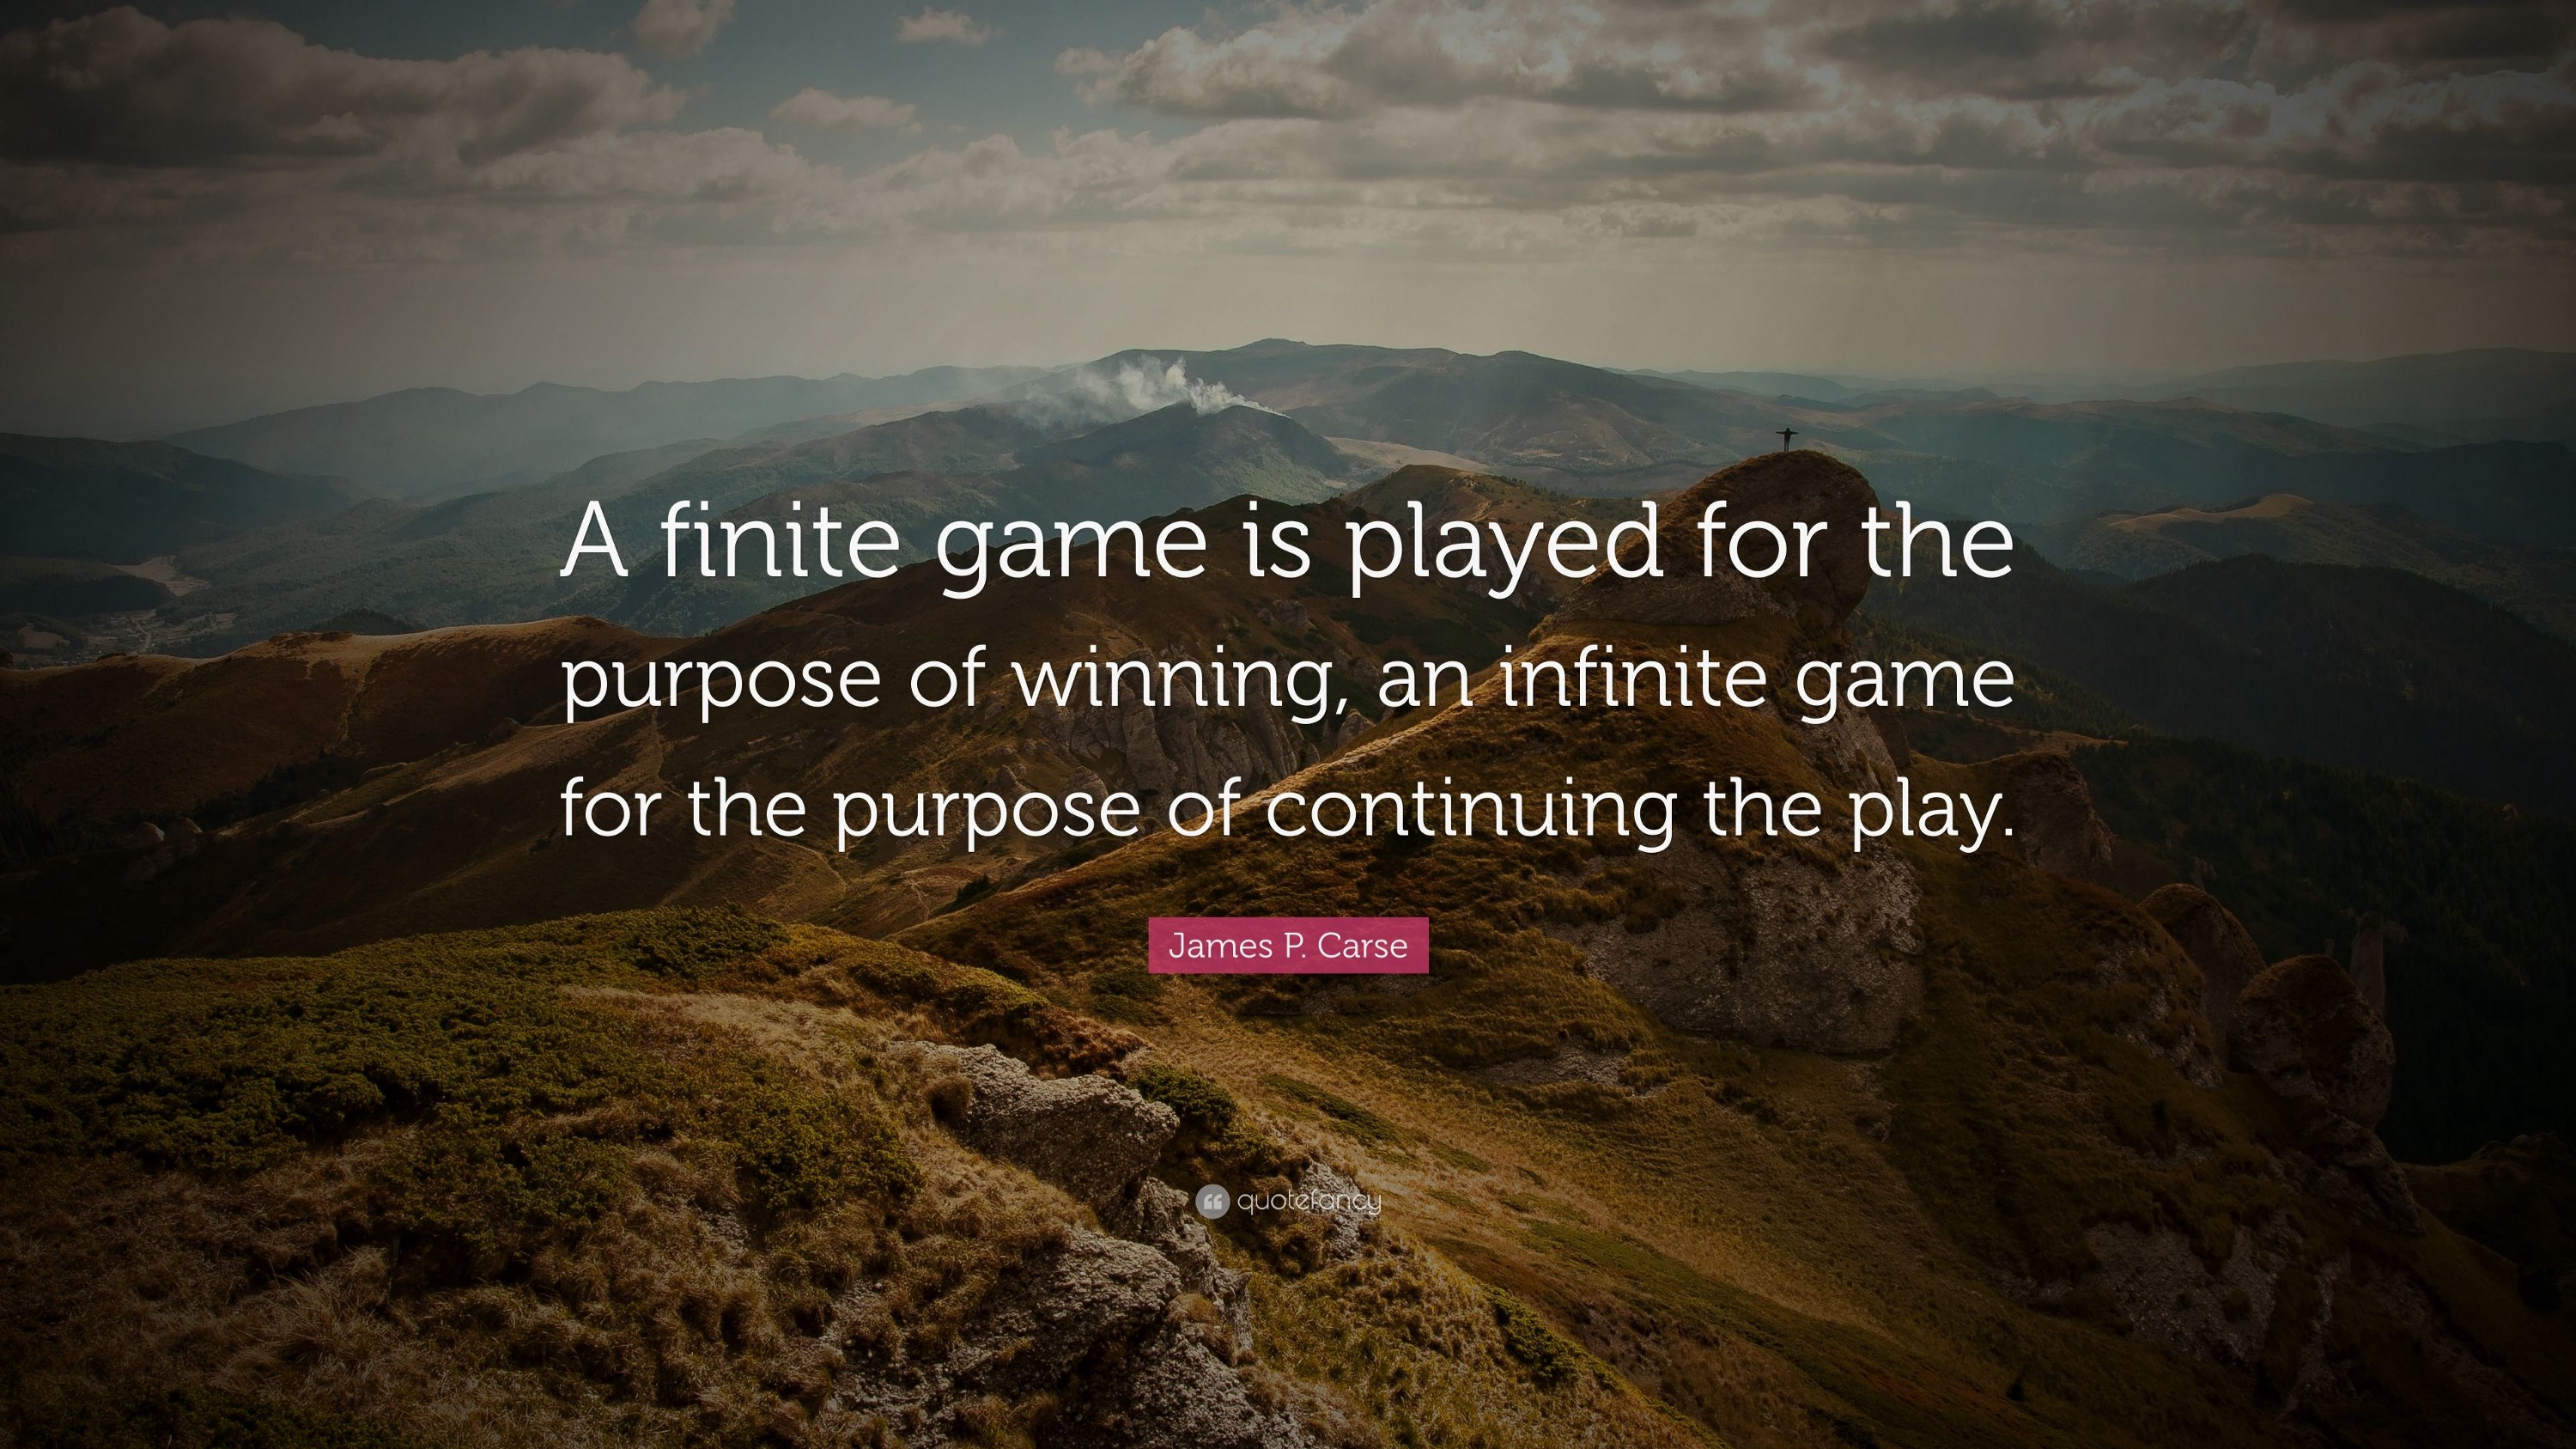 quote of James P. Carse